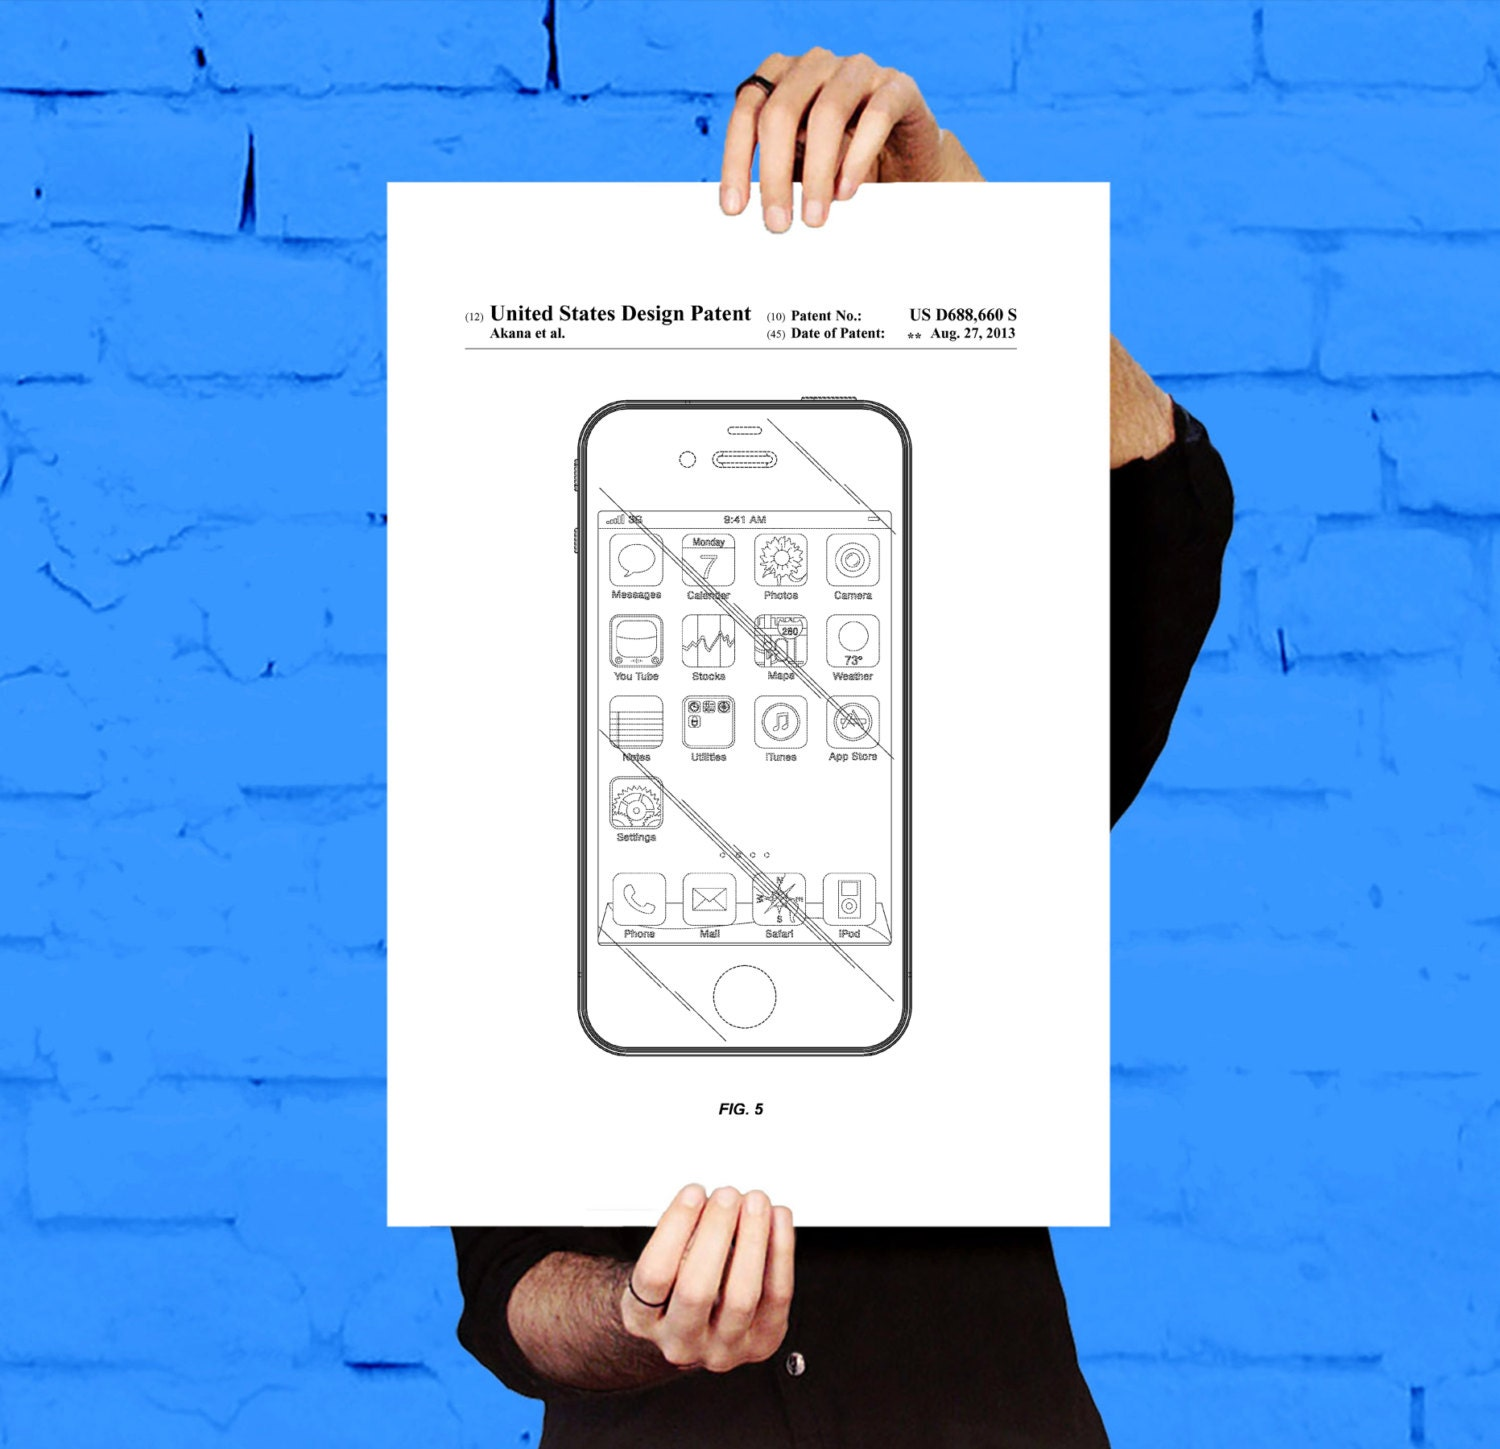 Iphone ios software patent iphone ios software poster iphone iphone ios software patent iphone ios software poster iphone blueprint iphone print iphone art iphone decor p177 malvernweather Image collections